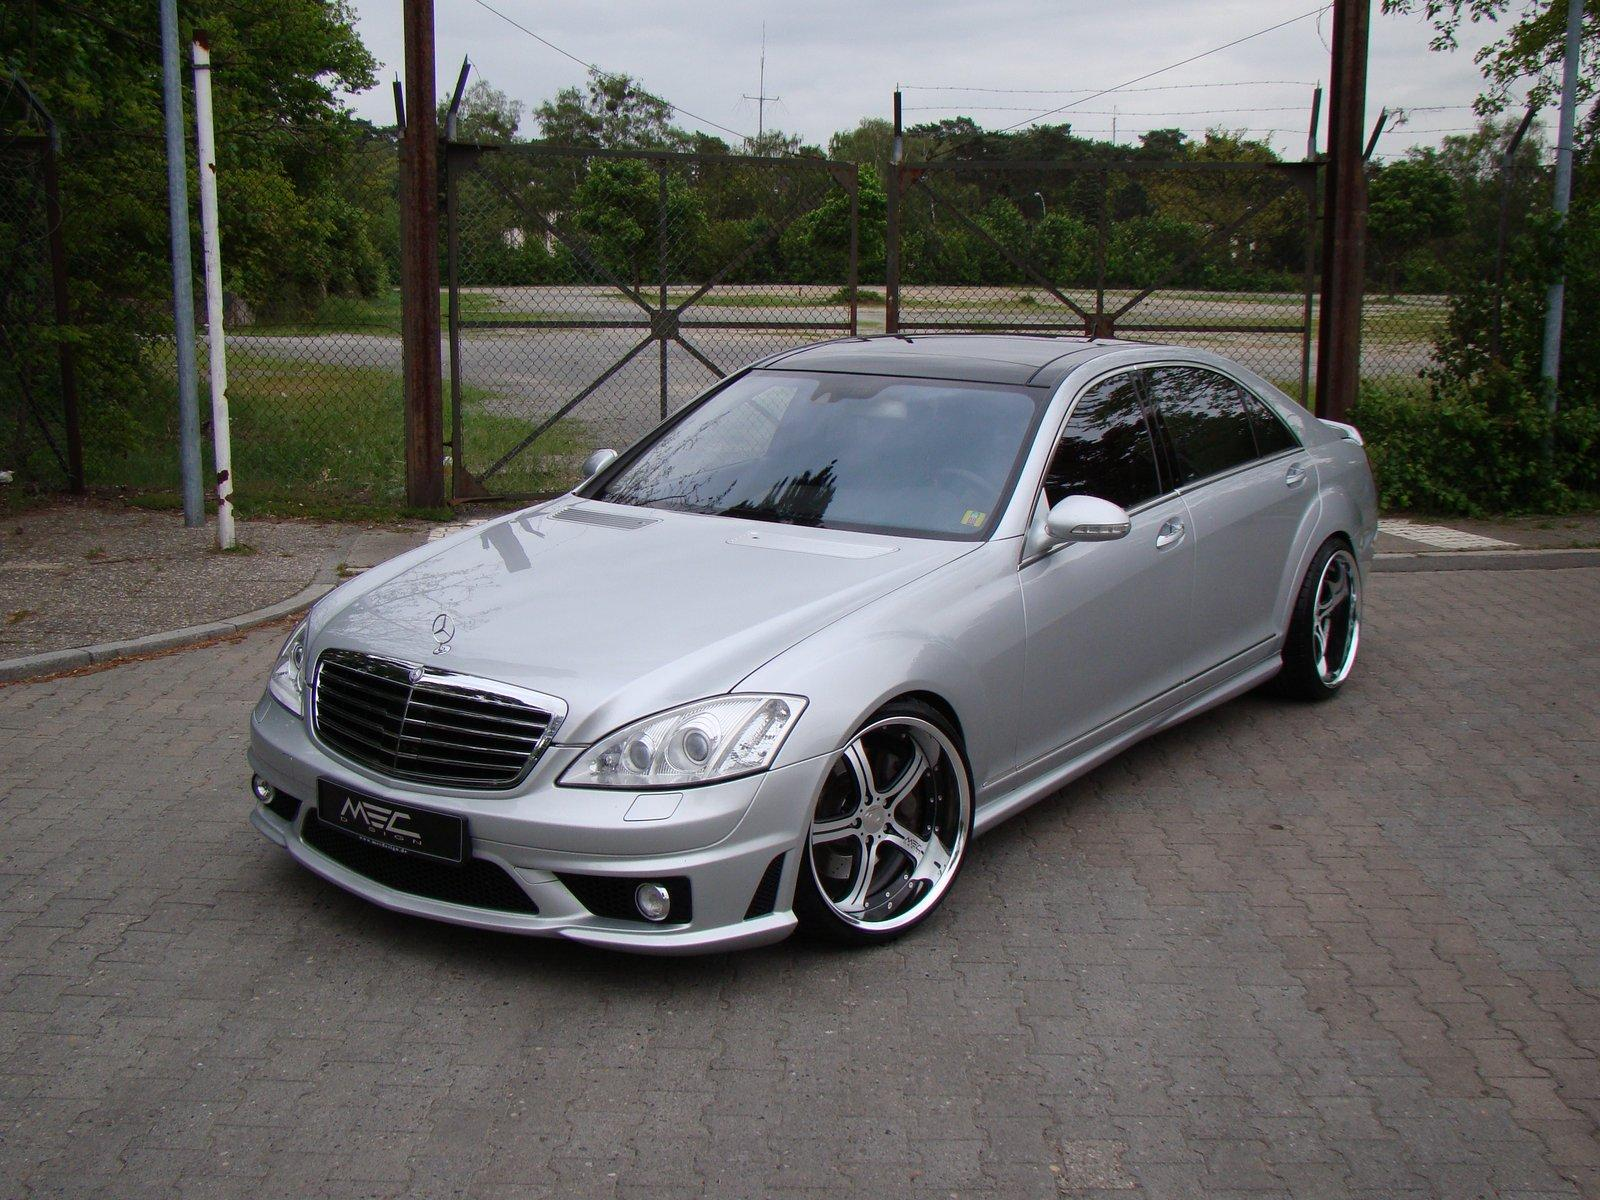 Mercedes-Benz S-Class wheels #1